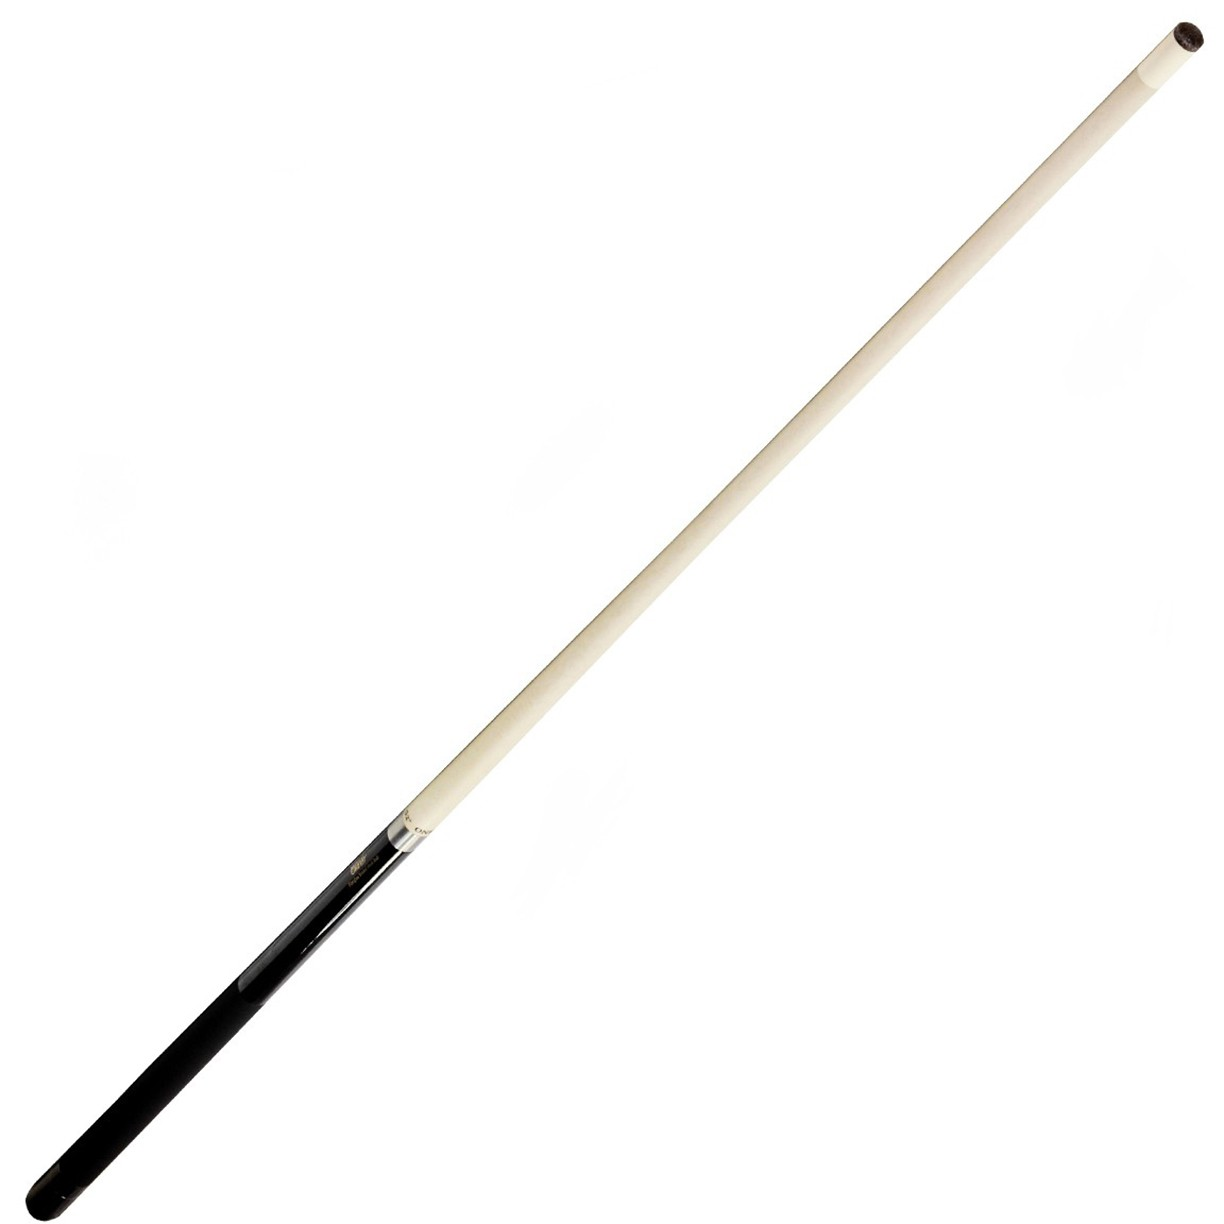 Cuetec Professional Series 52-in. One Piece Cue - 12-99524 - Ncaa College Webb Institute Webb Institute Webbies One Touch Holders 12-99524